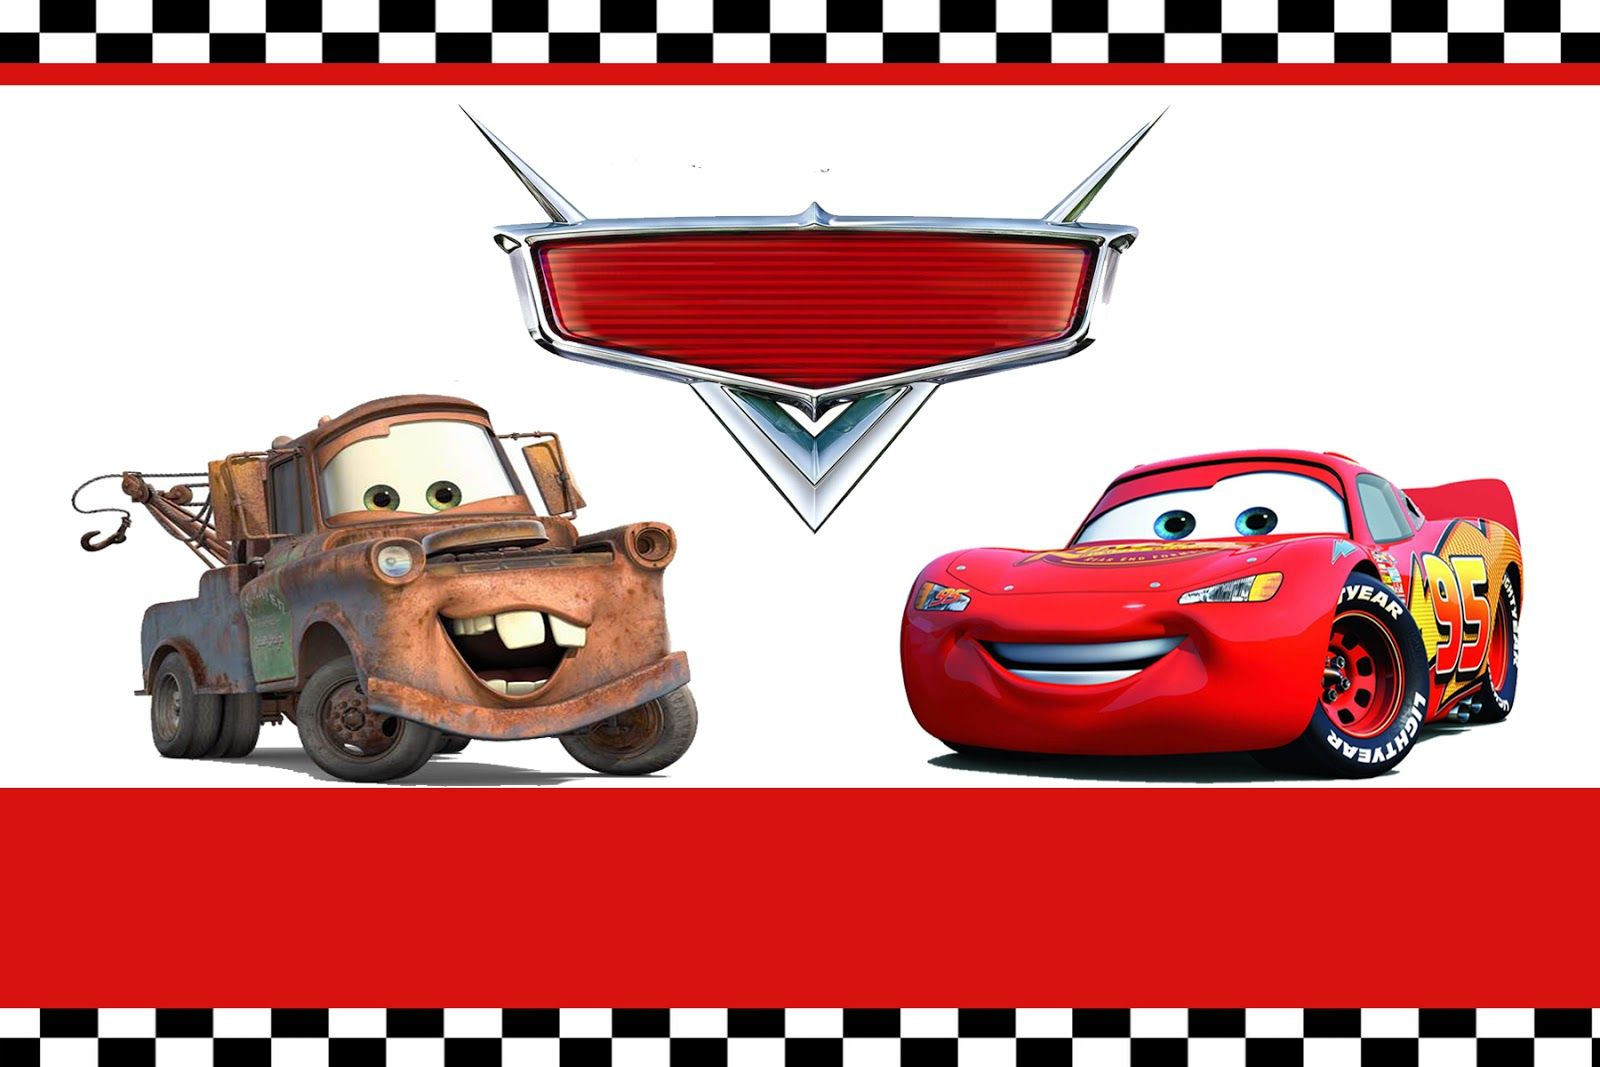 Free Printable Disney Cars Birthday Party Invitations Disney Cars - Free Printable Disney Cars Birthday Party Invitations